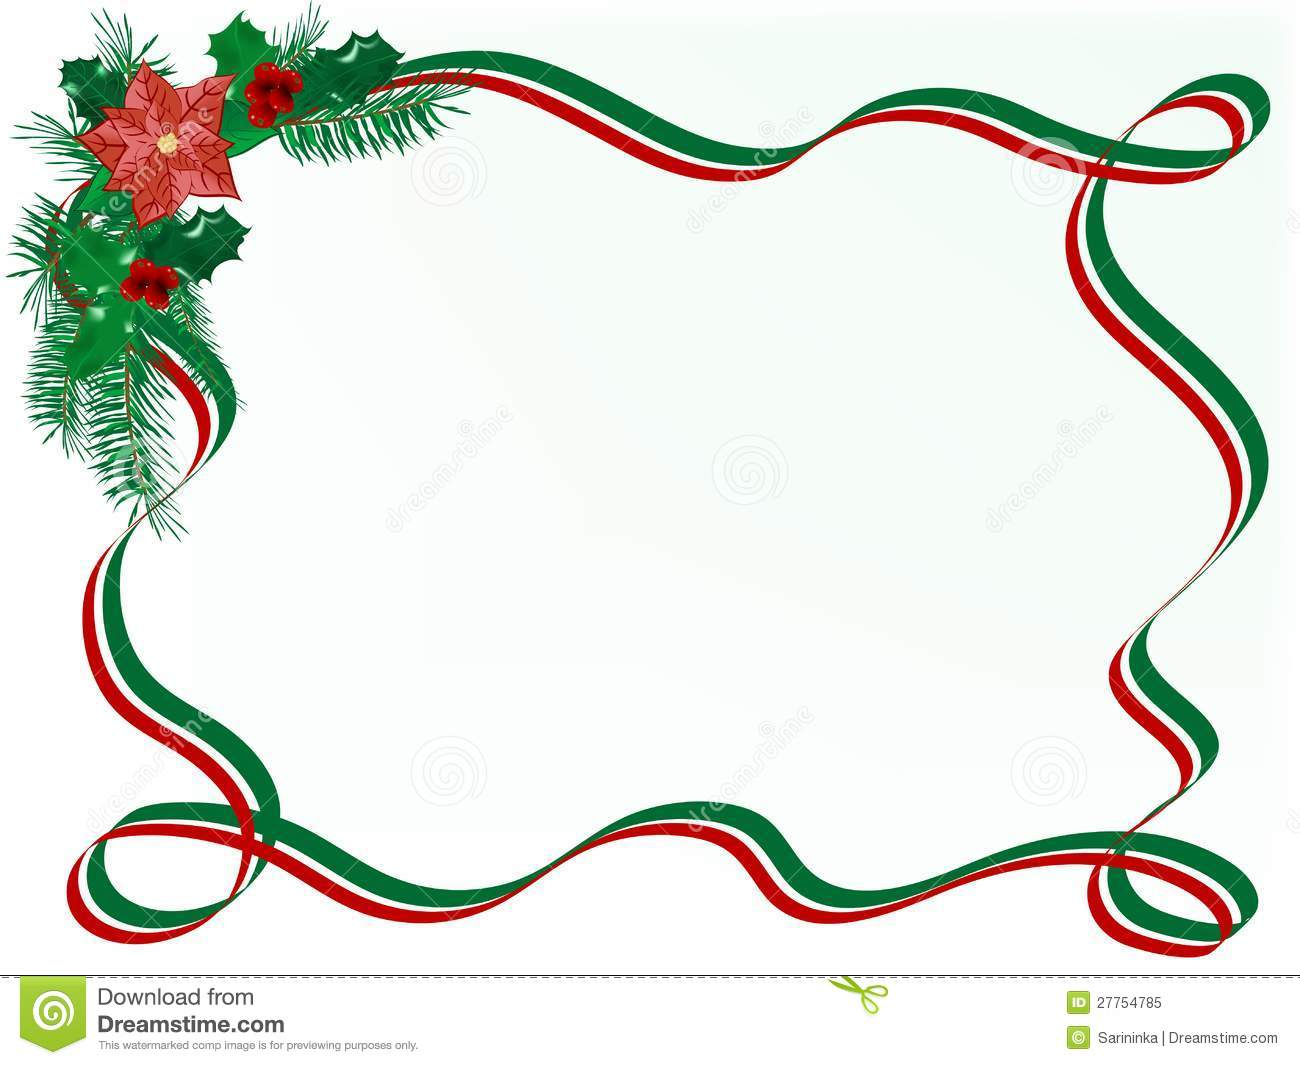 Christmas Garland Royalty Free Stock Photo   Image  27754785